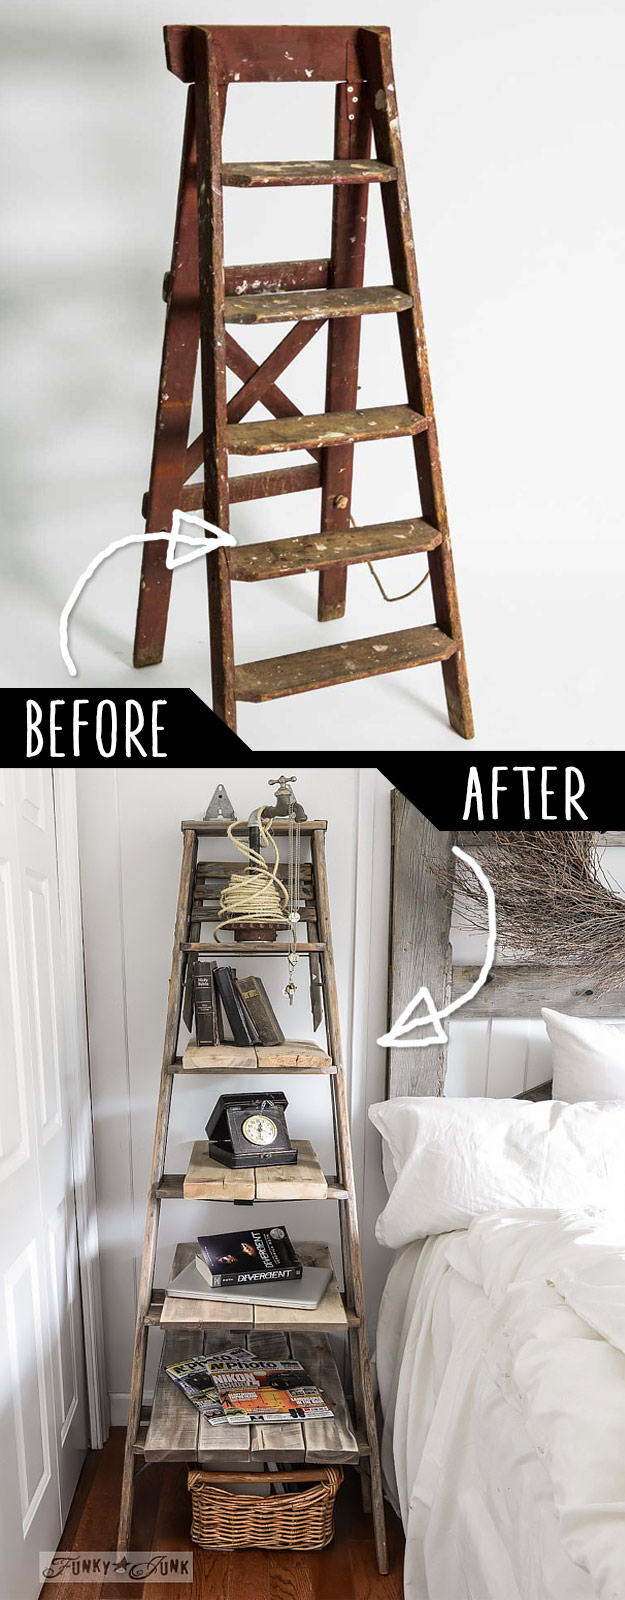 DIY Furniture Hacks   Step Ladder Side Table   Cool Ideas for Creative Do It Yourself Furniture Made From Things You Might Not Expect #diy